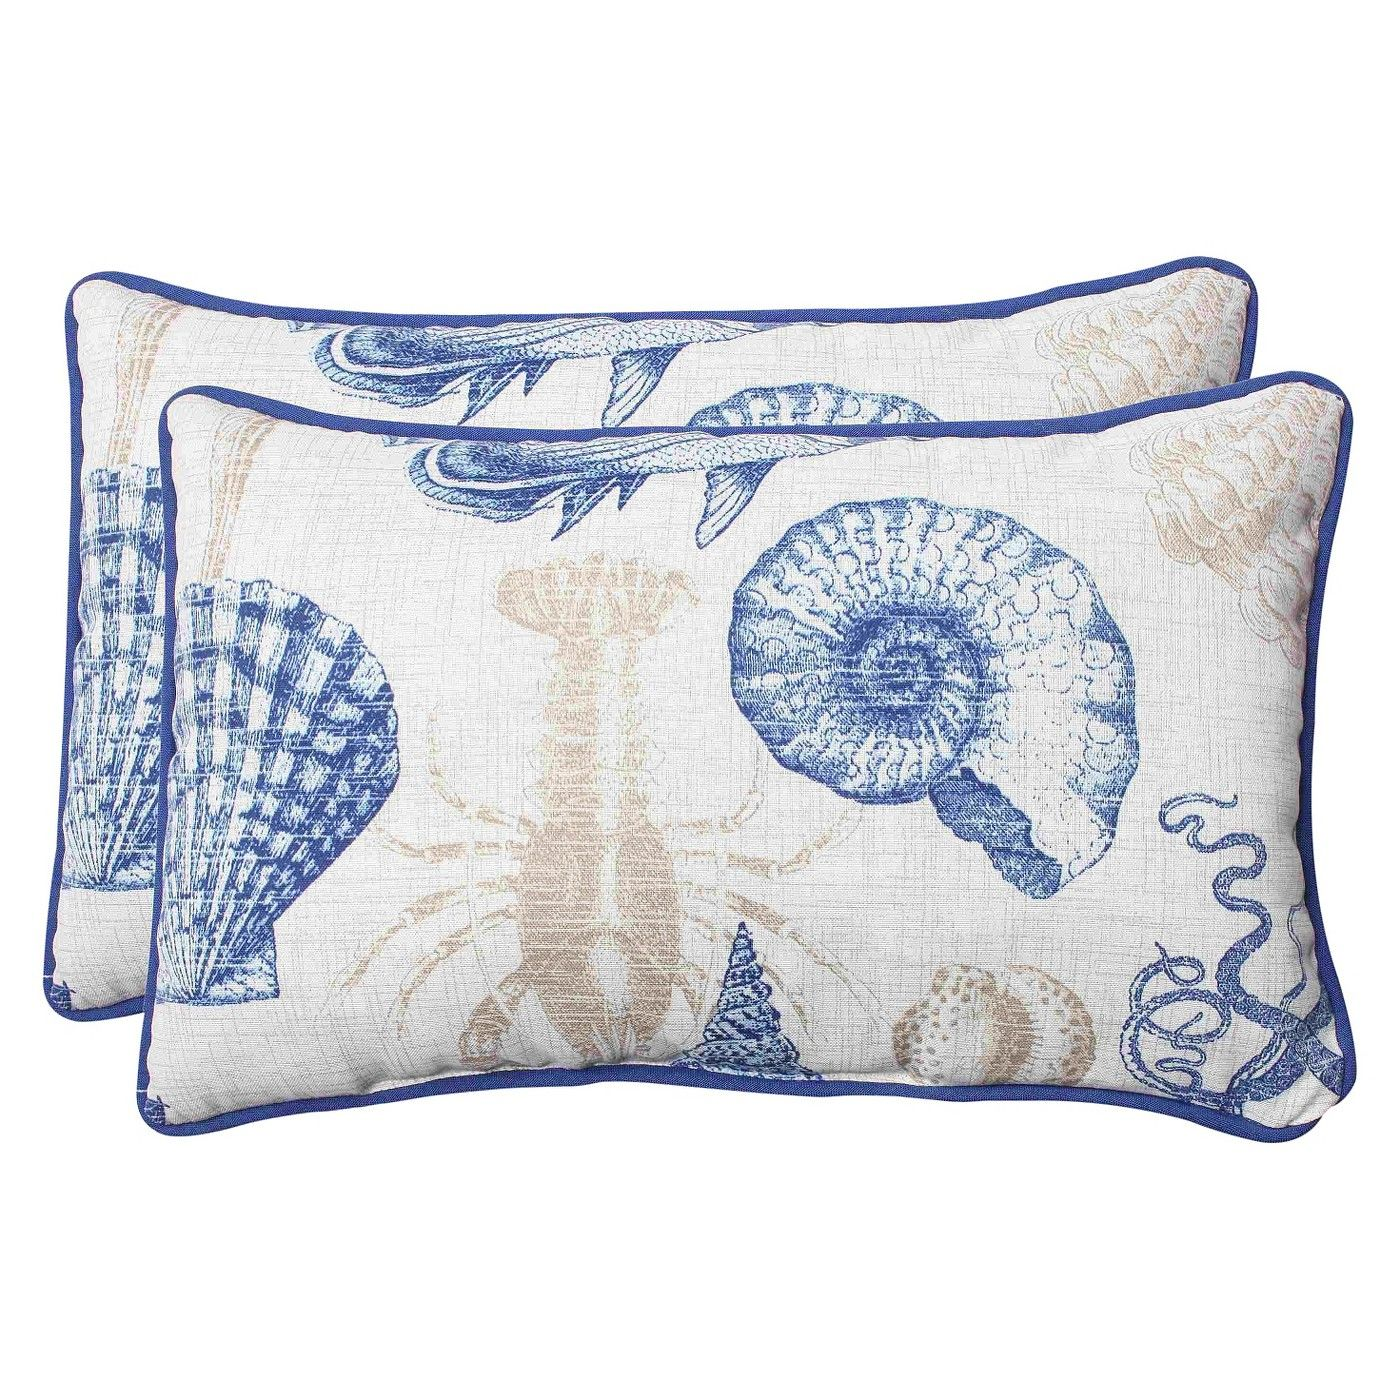 Outdoor 2 Piece Lumbar Throw Pillow Set Sealife You Can Turn Your Outdoor Seating Area Into A Coastal Oasis Wi Perfect Pillow Throw Pillow Sets Throw Pillows